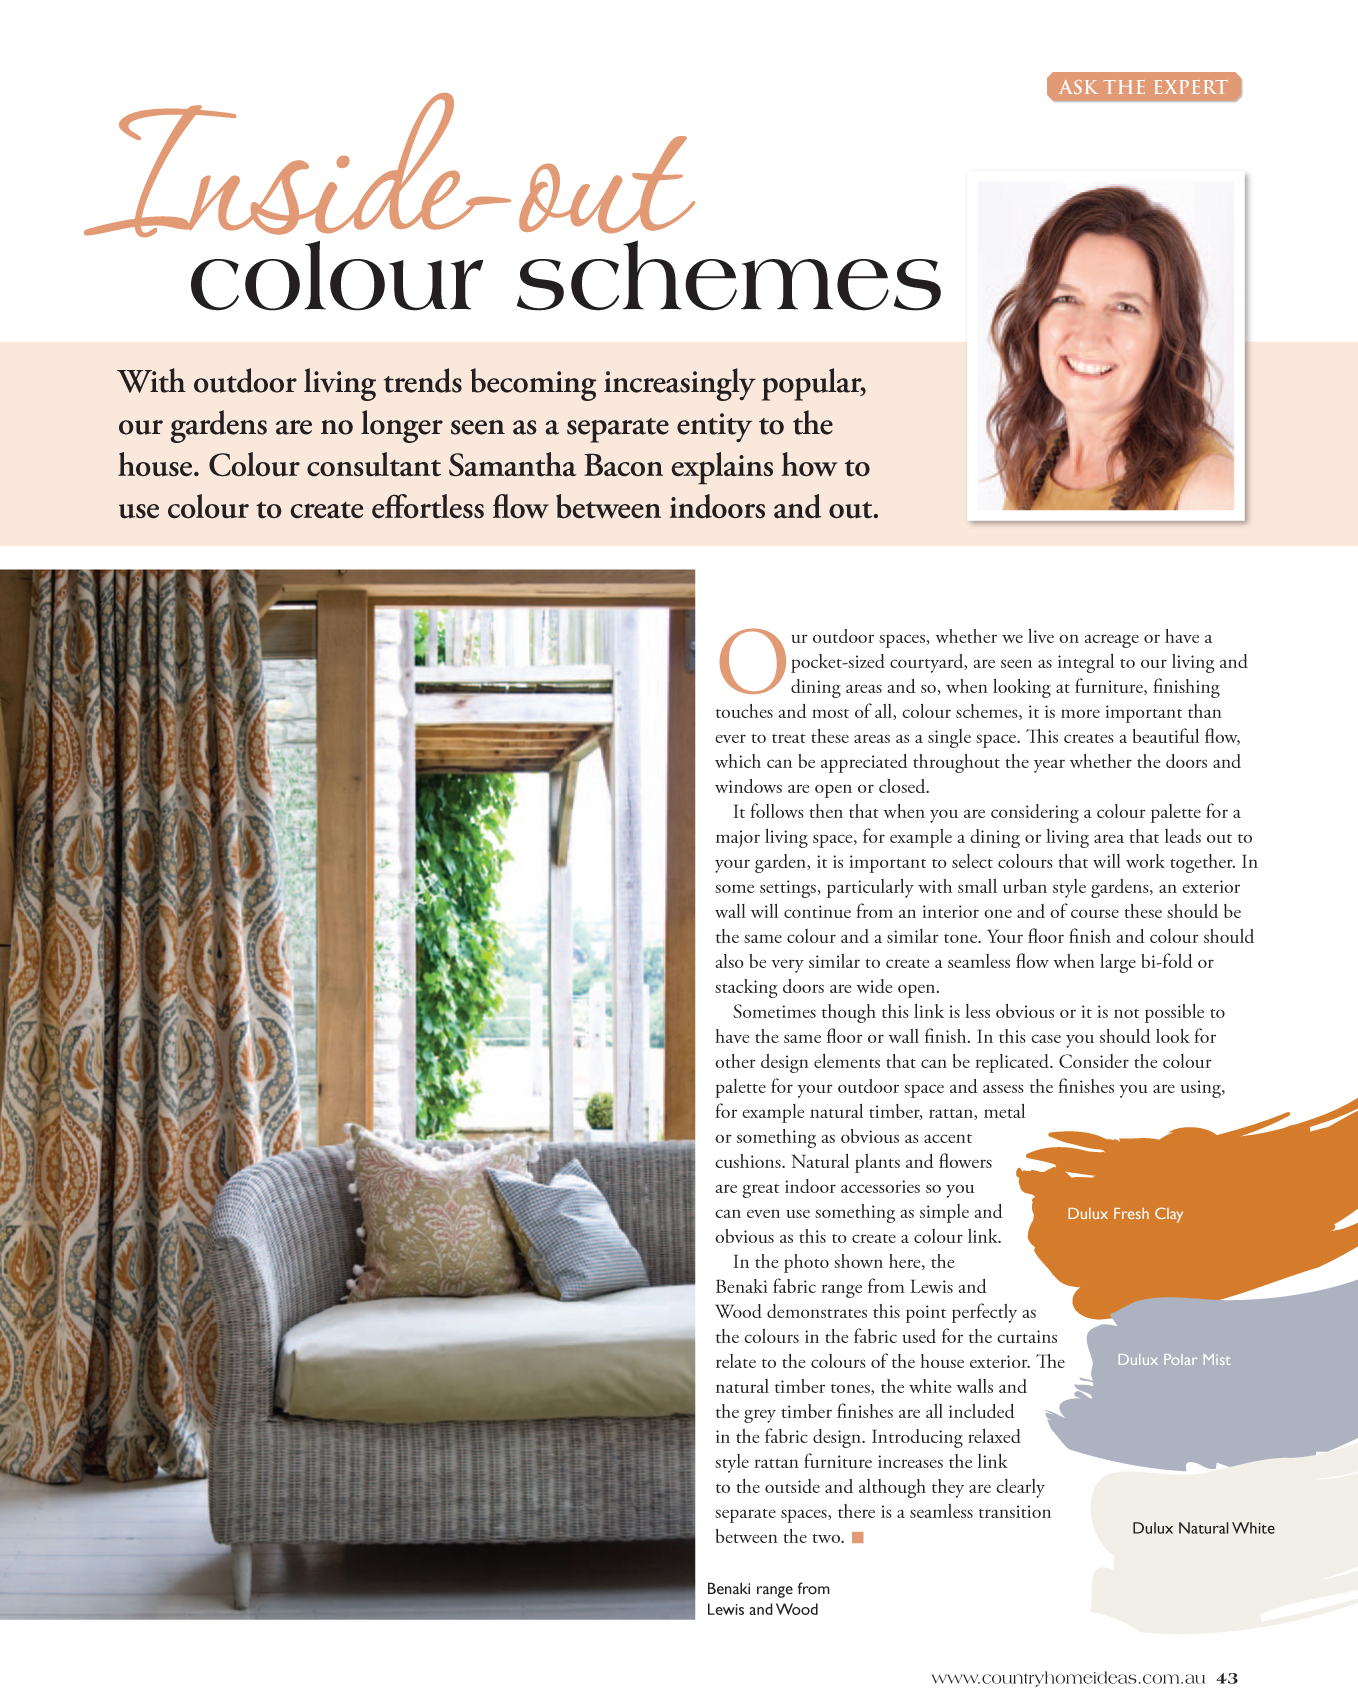 Country Home Ideas Magazine - Inside-out Colour Schemes